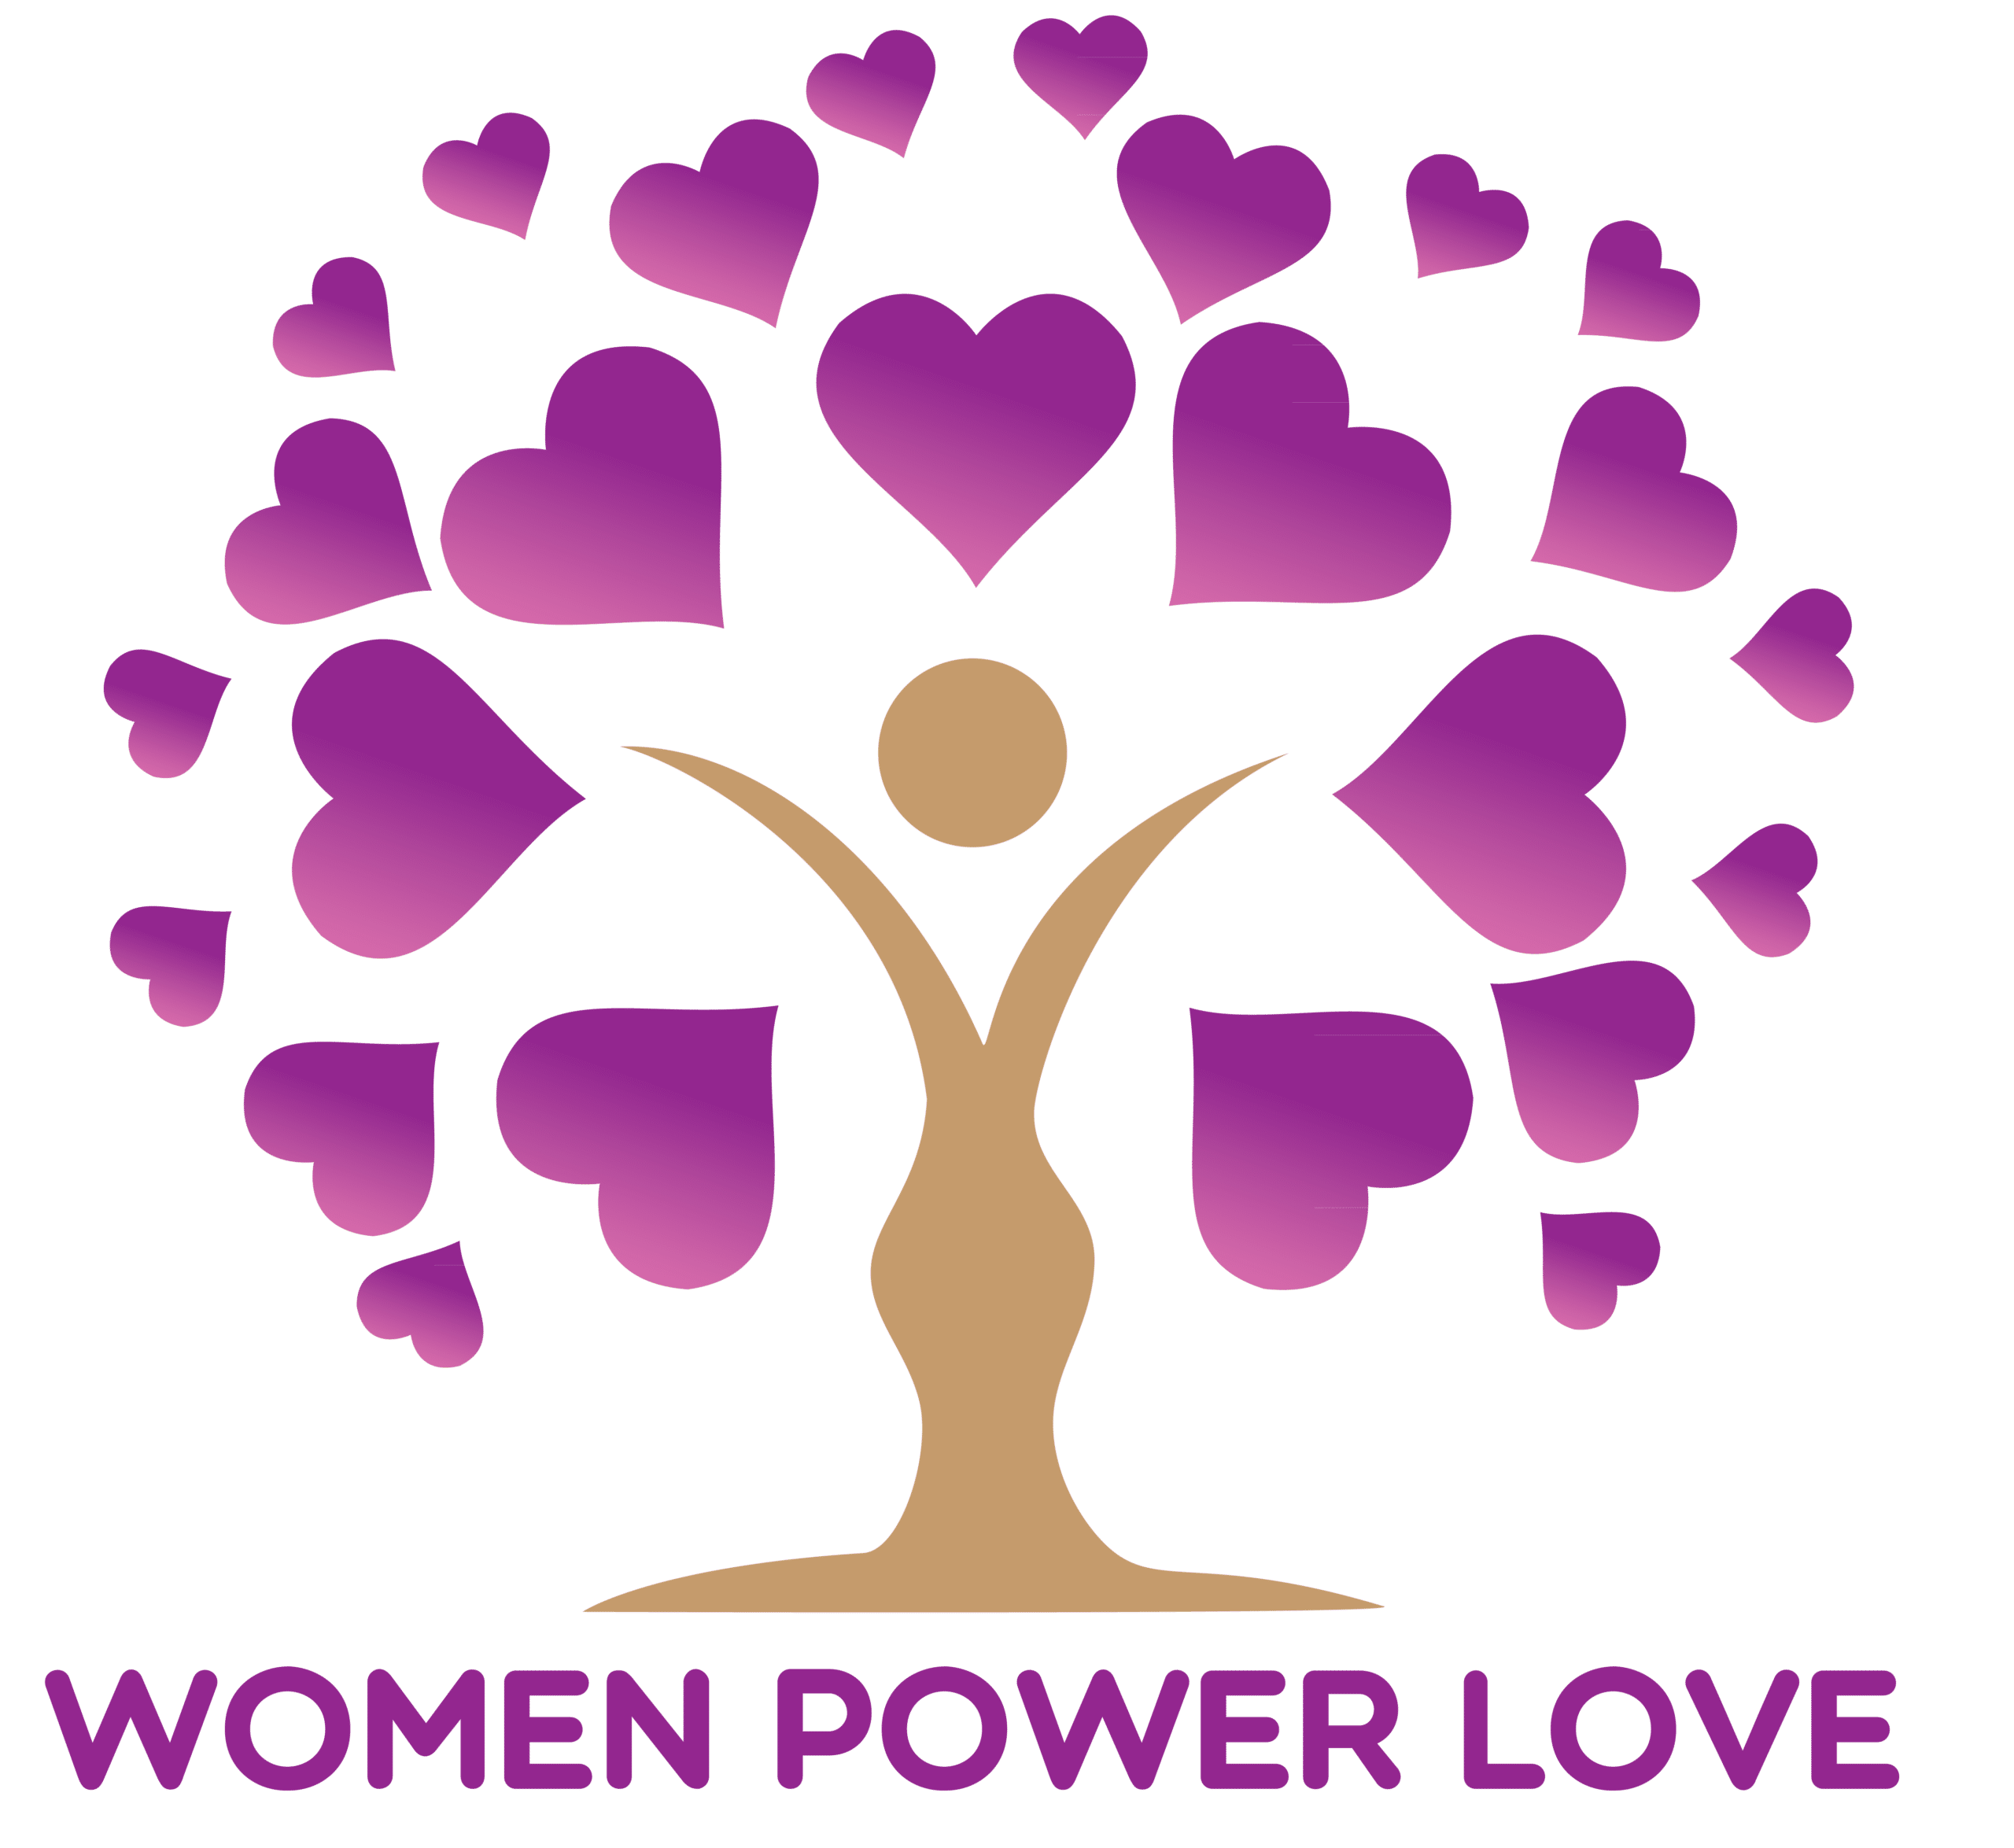 women power love foundation